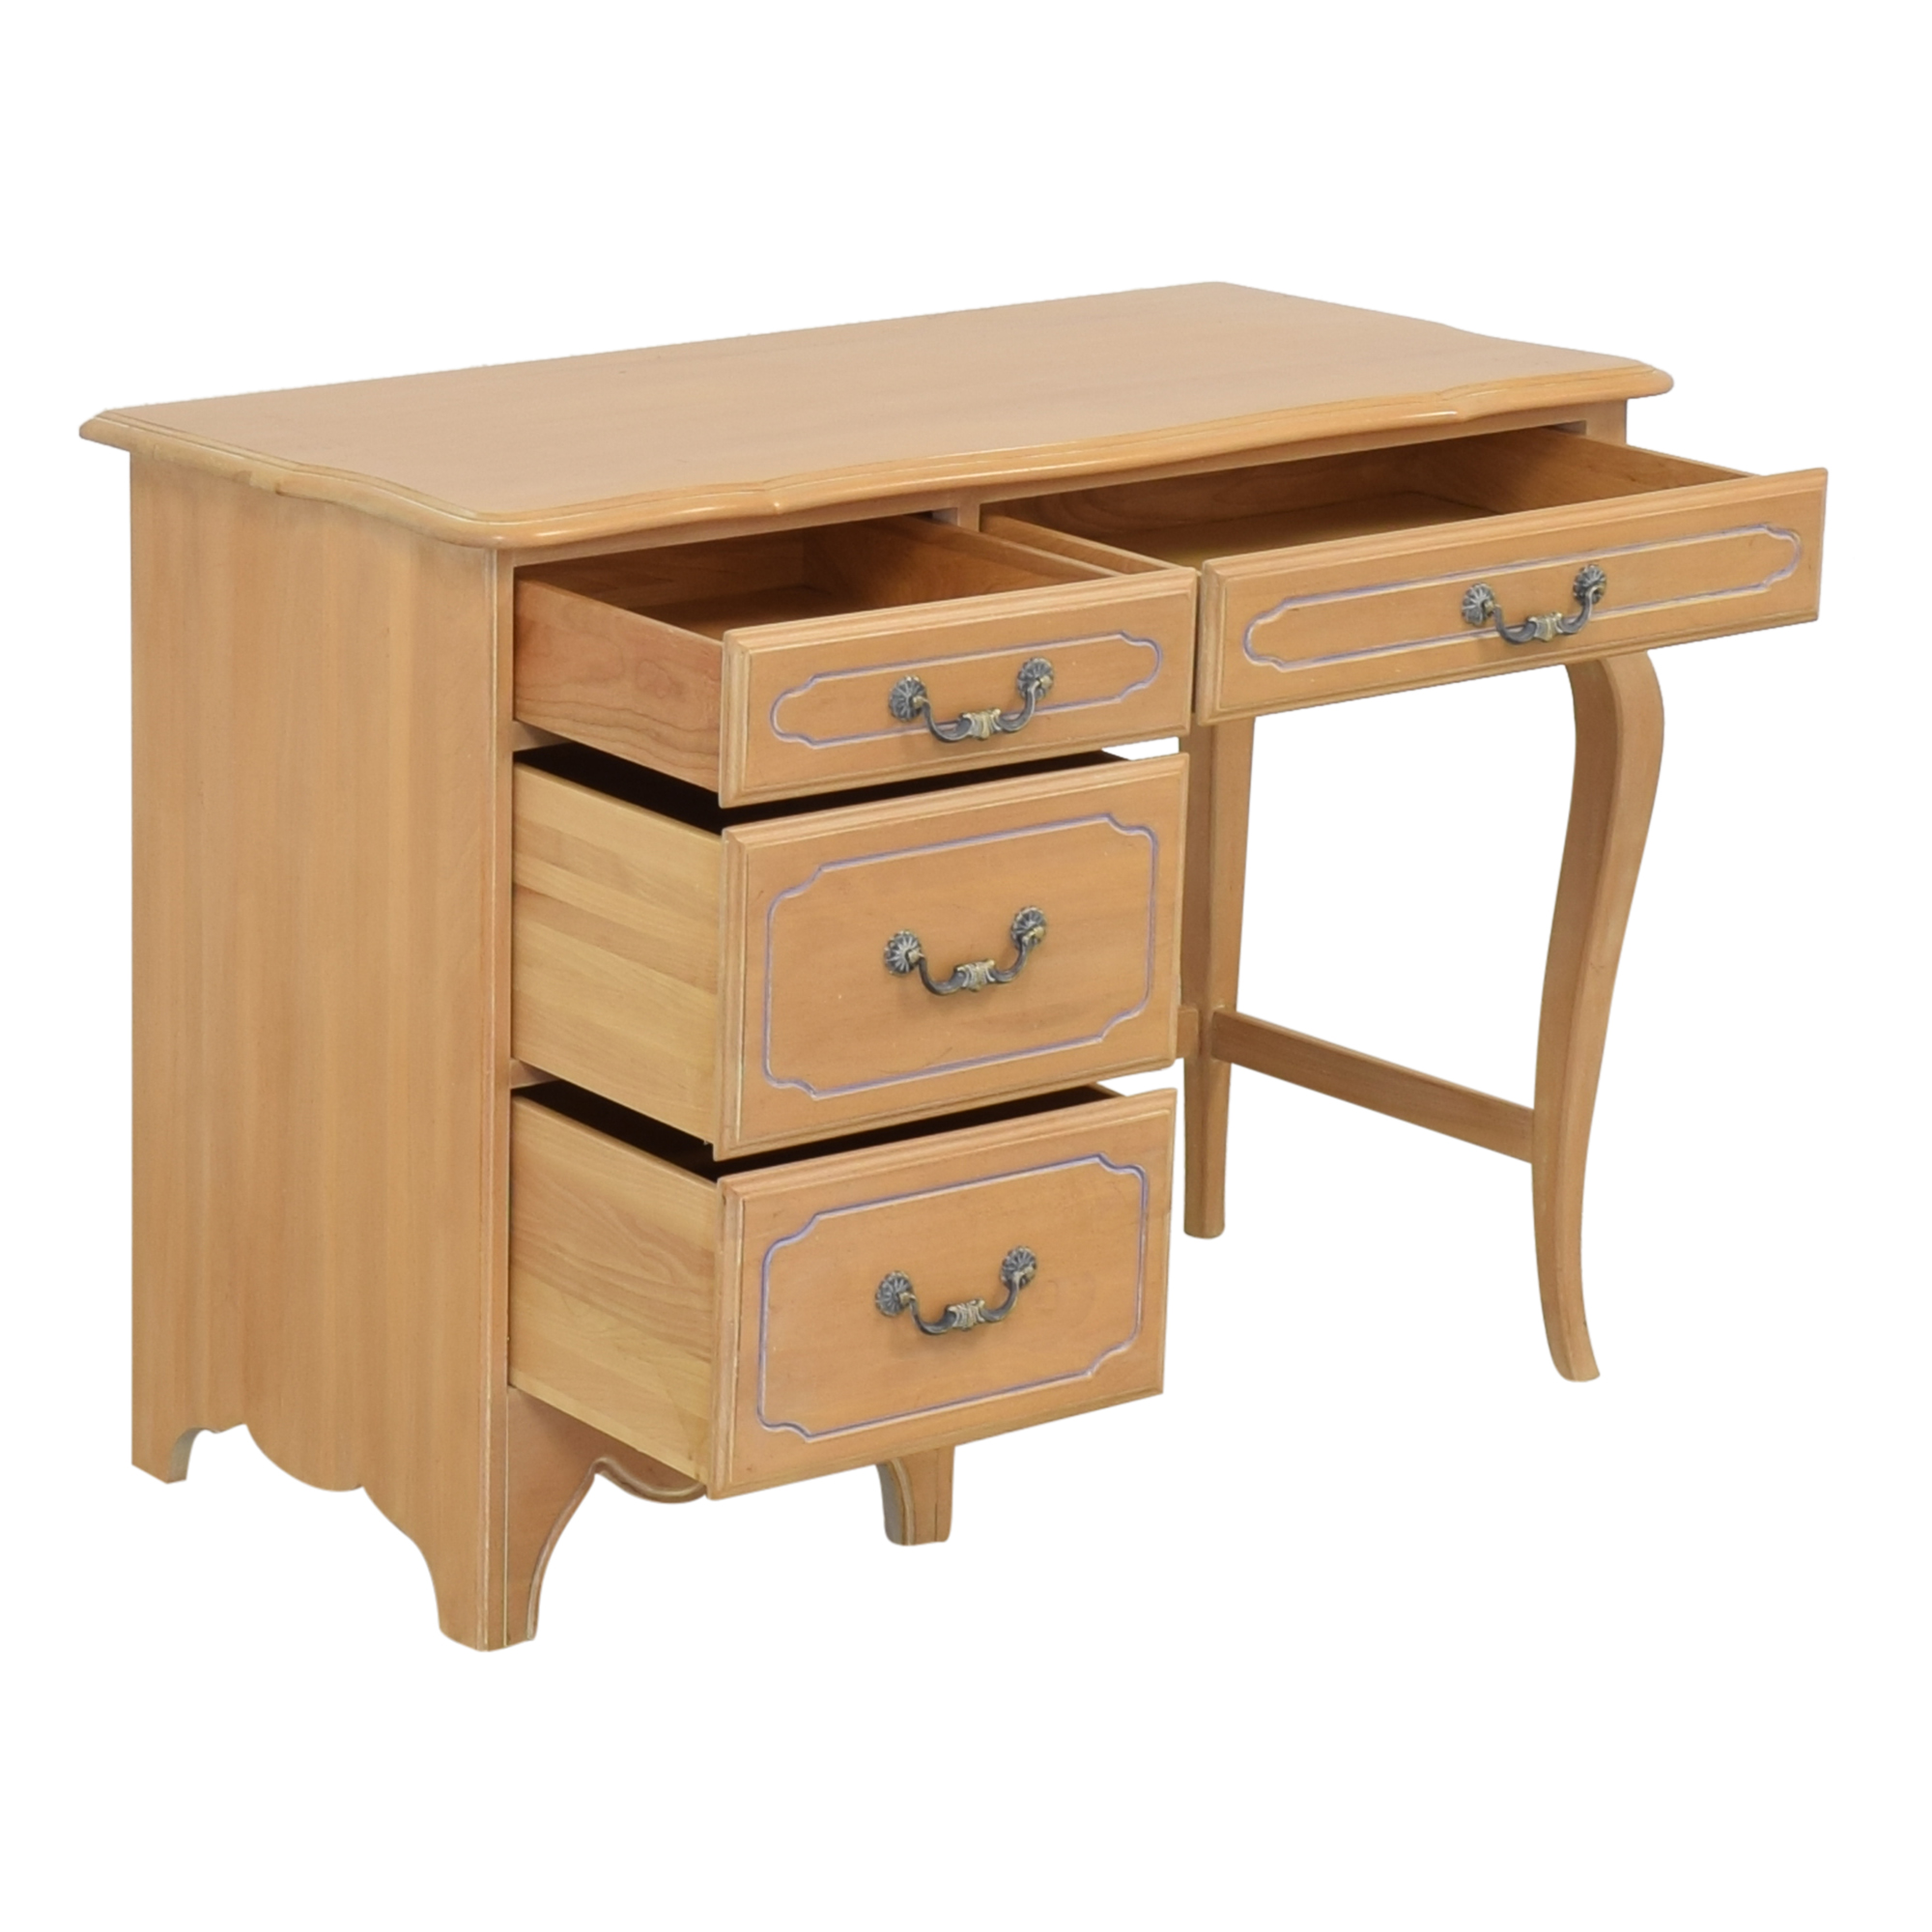 Ethan Allen Ethan Allen Traditional Desk with Drawers second hand